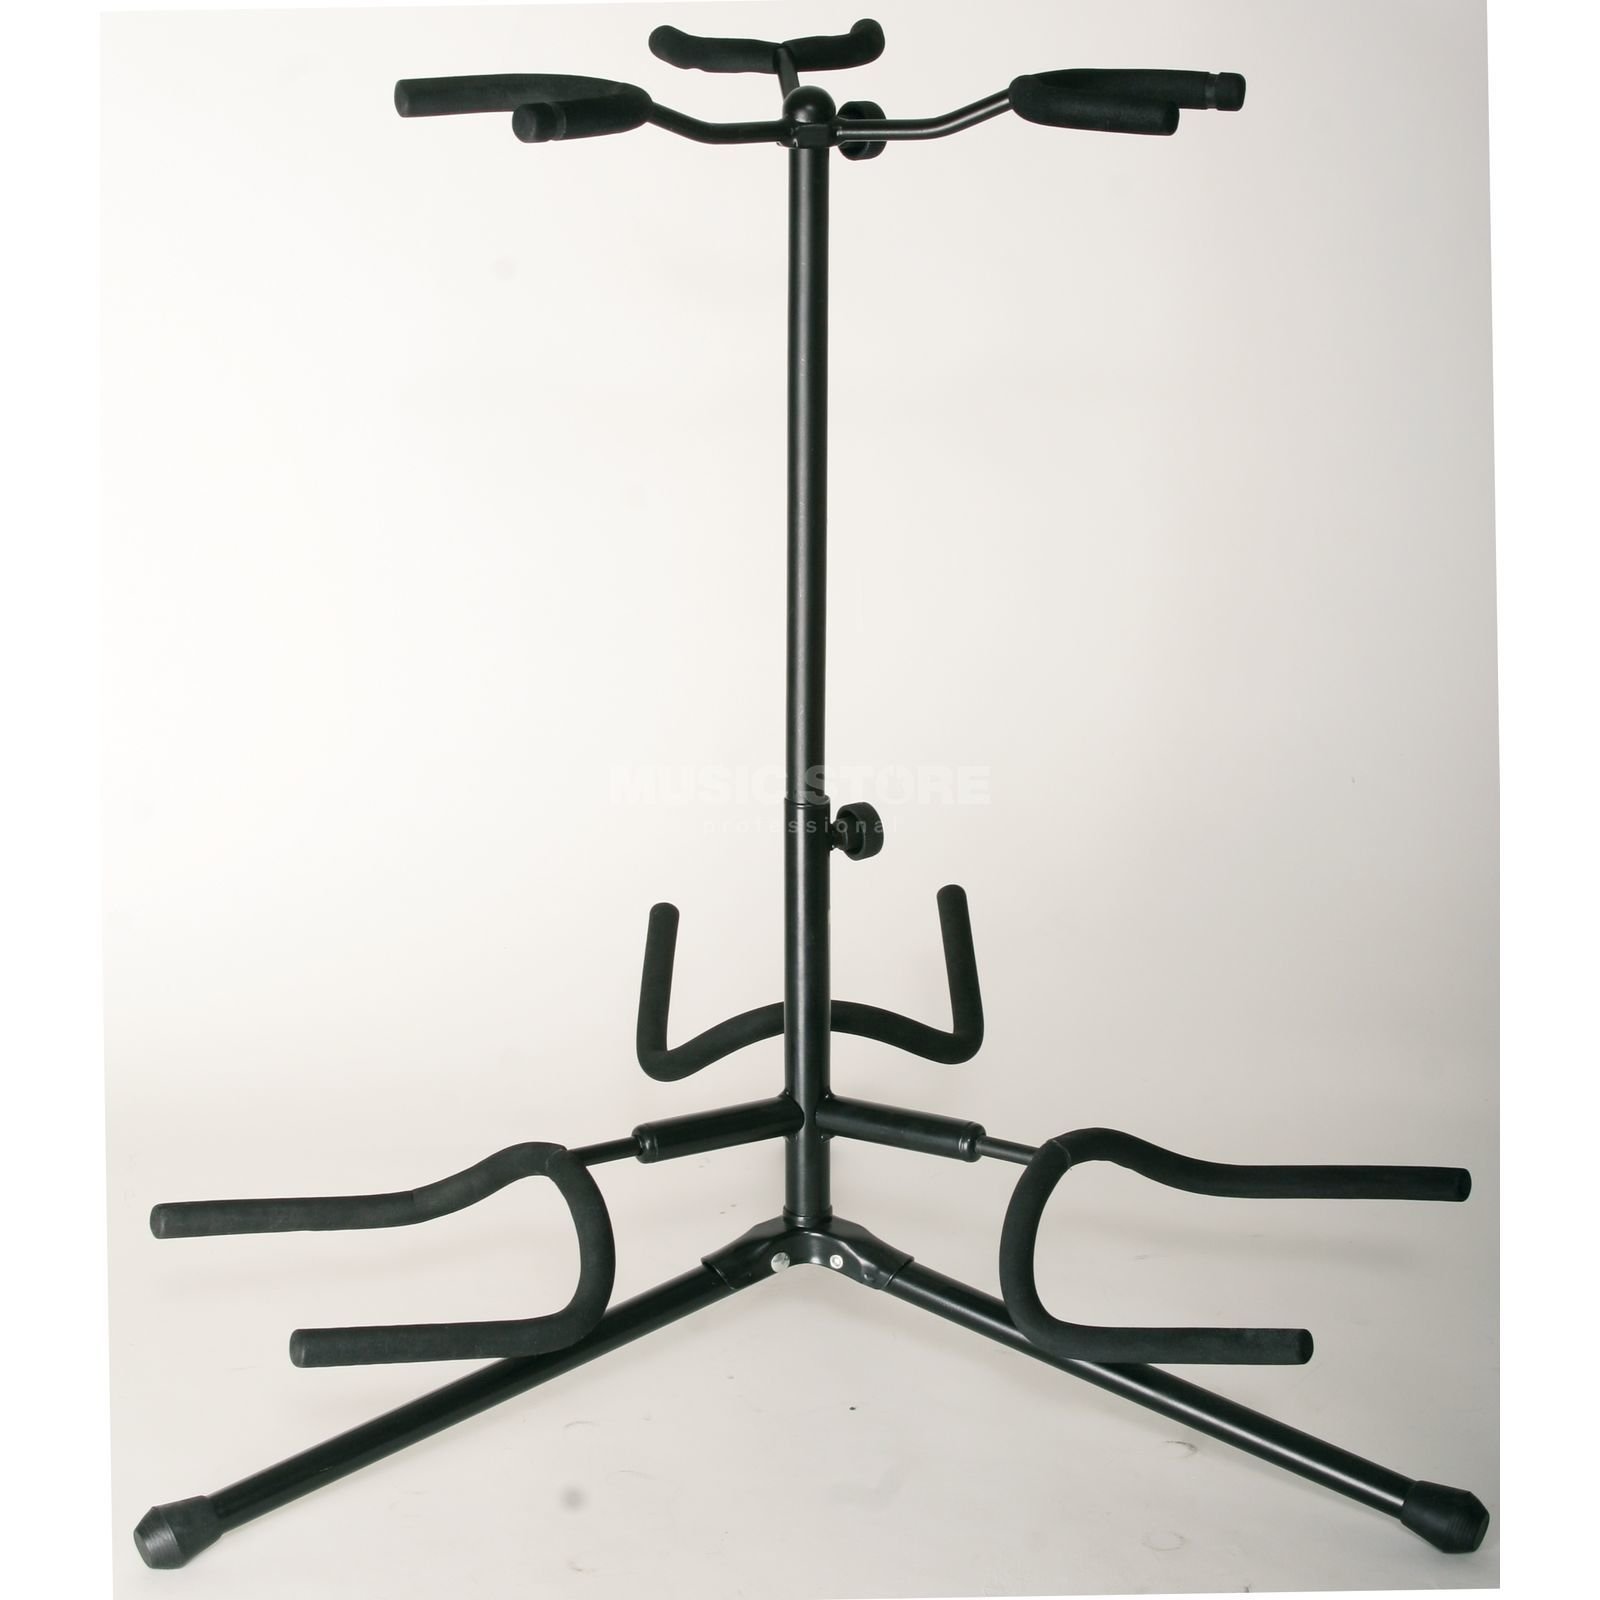 Rockstand Std. Guitar Stand for 3 Guit. HeightAdjustable, Folding Feet Produktbillede